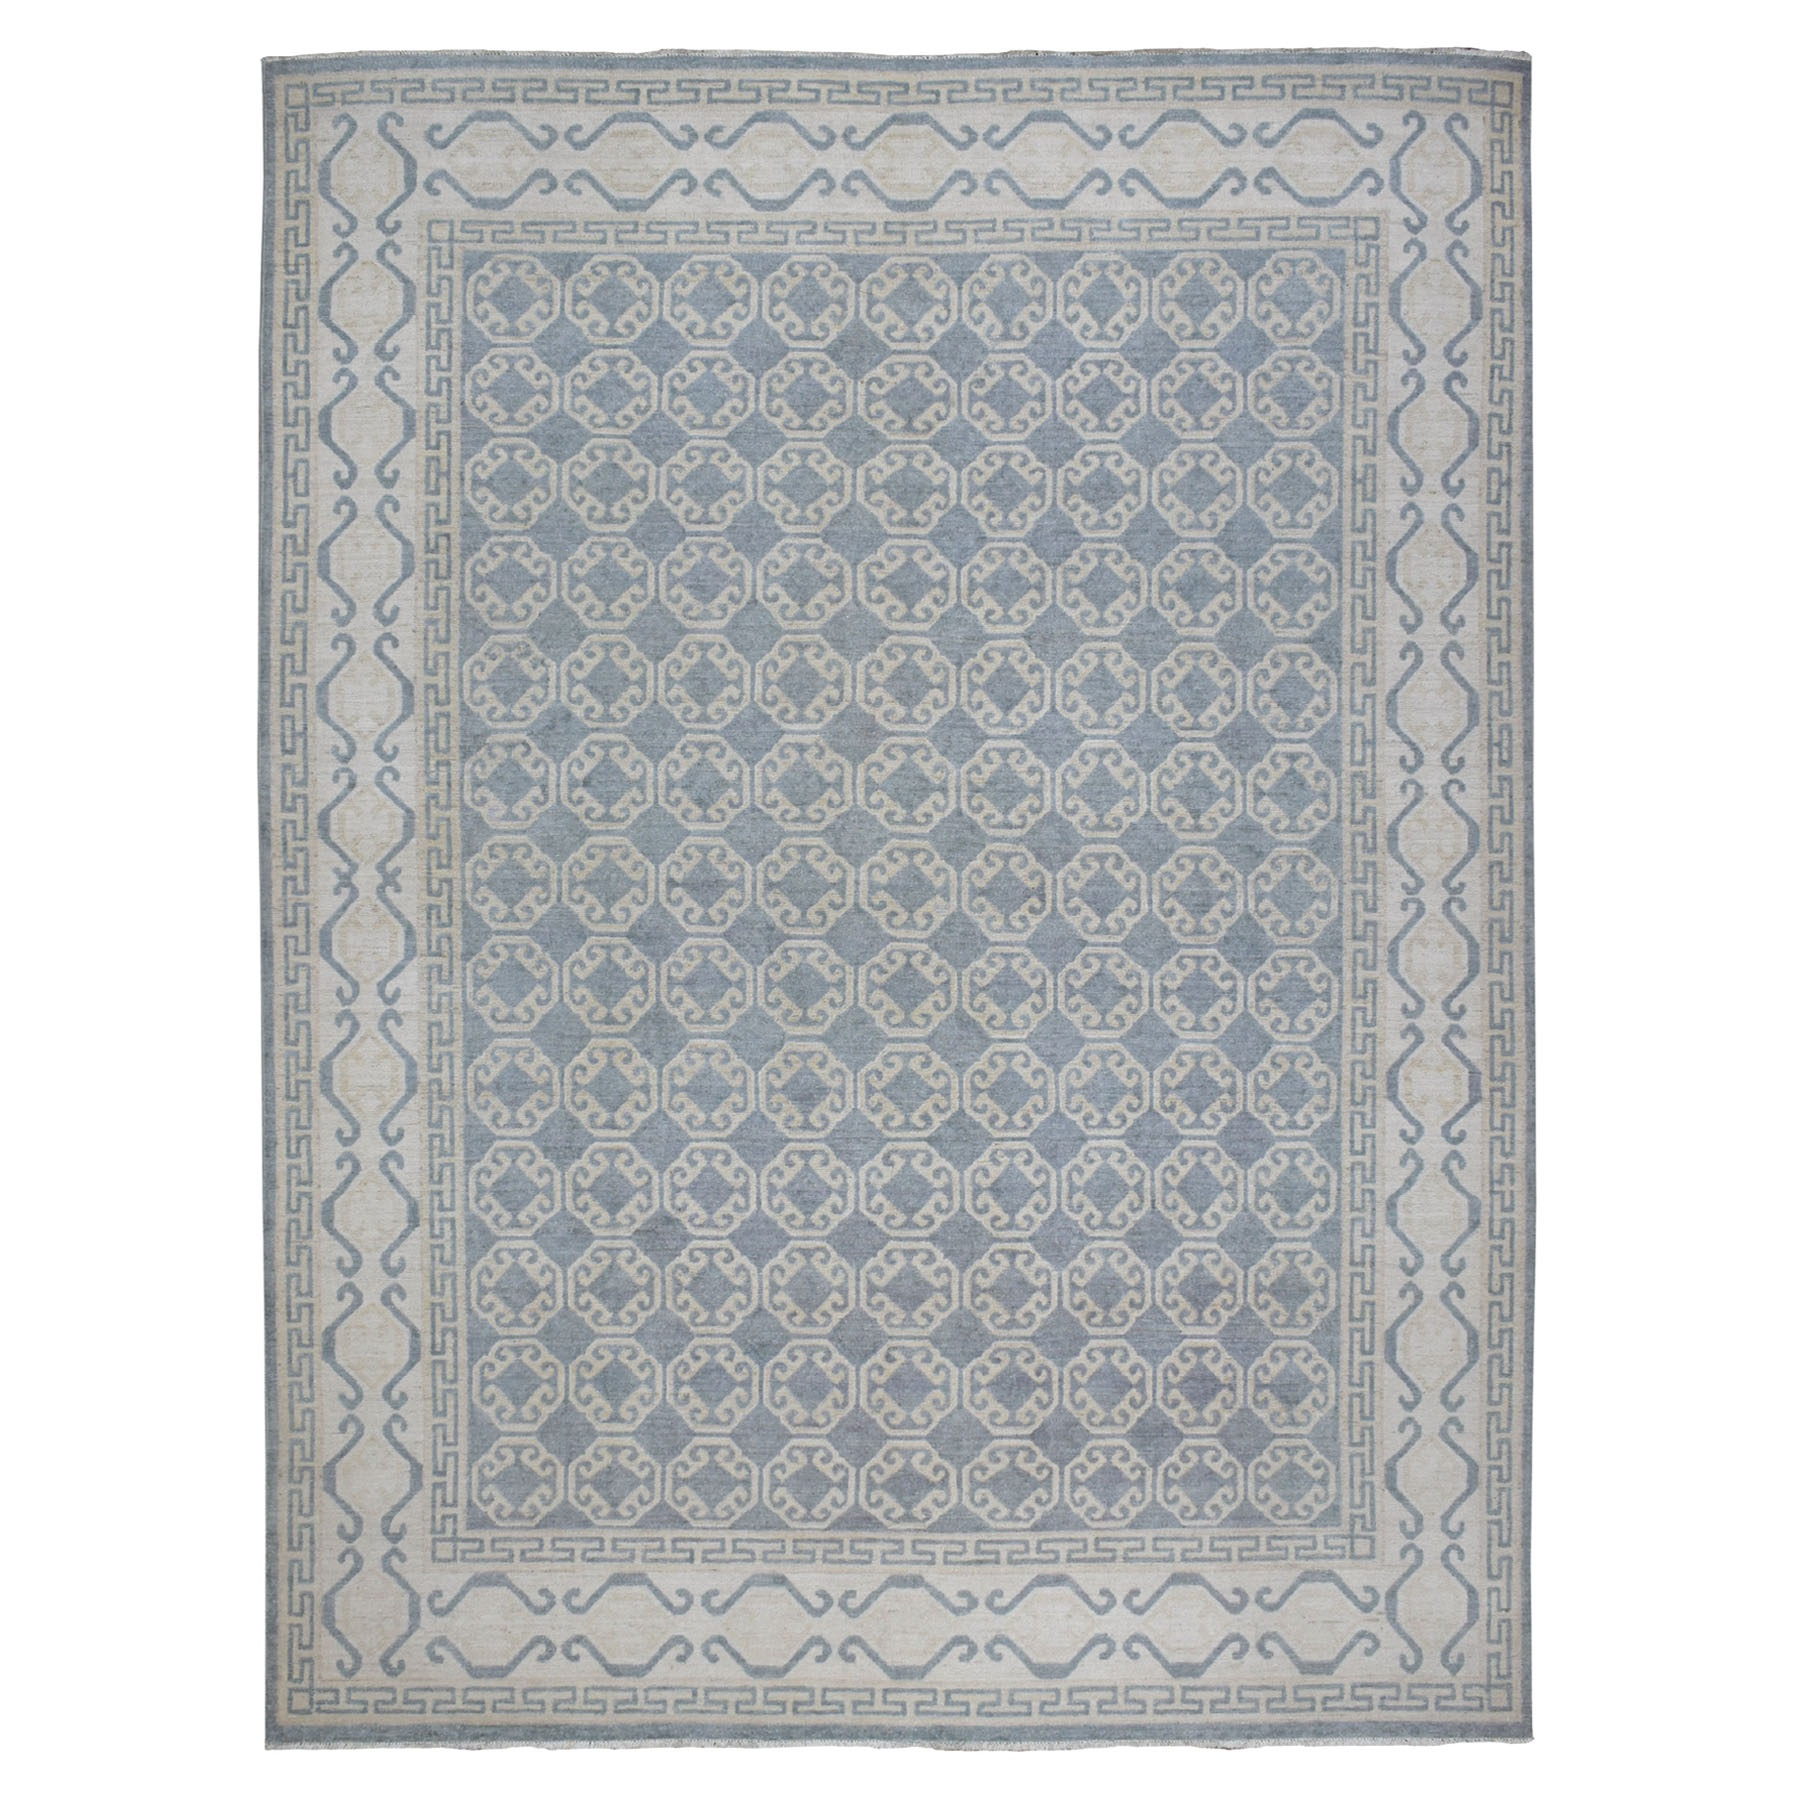 Agra And Turkish Collection Hand Knotted Grey Rug No: 1107934